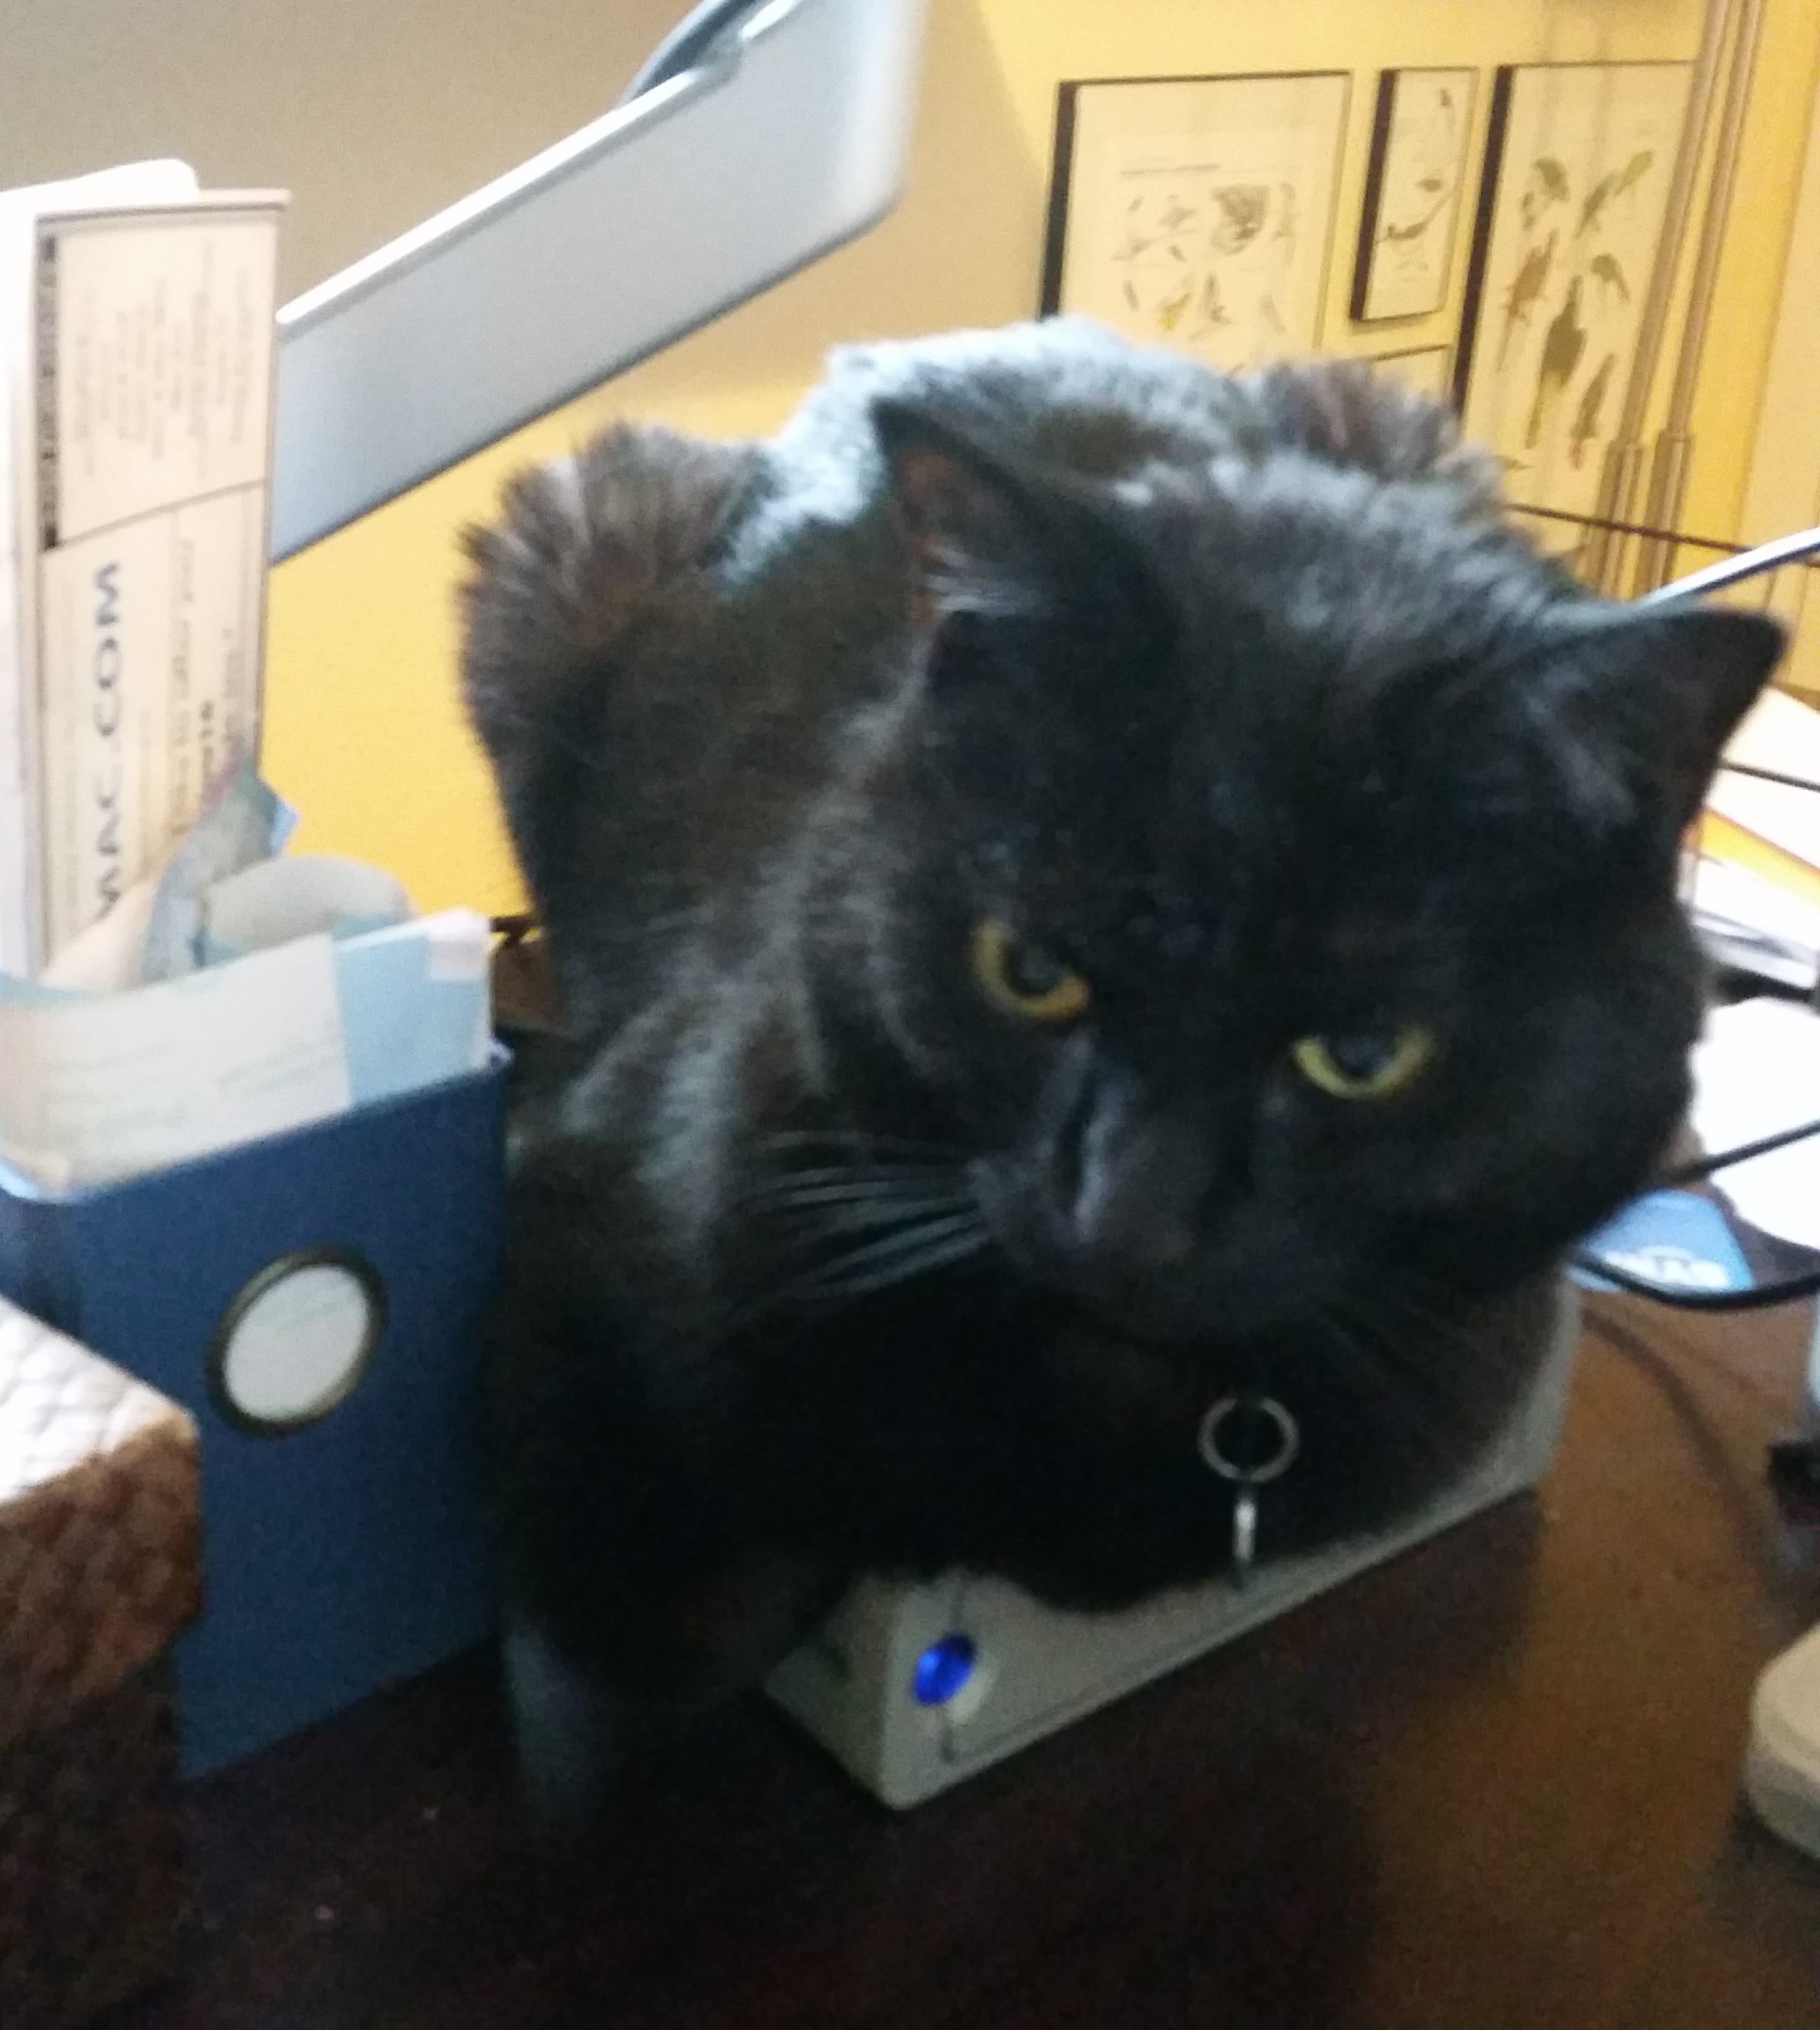 Cats and computer drives